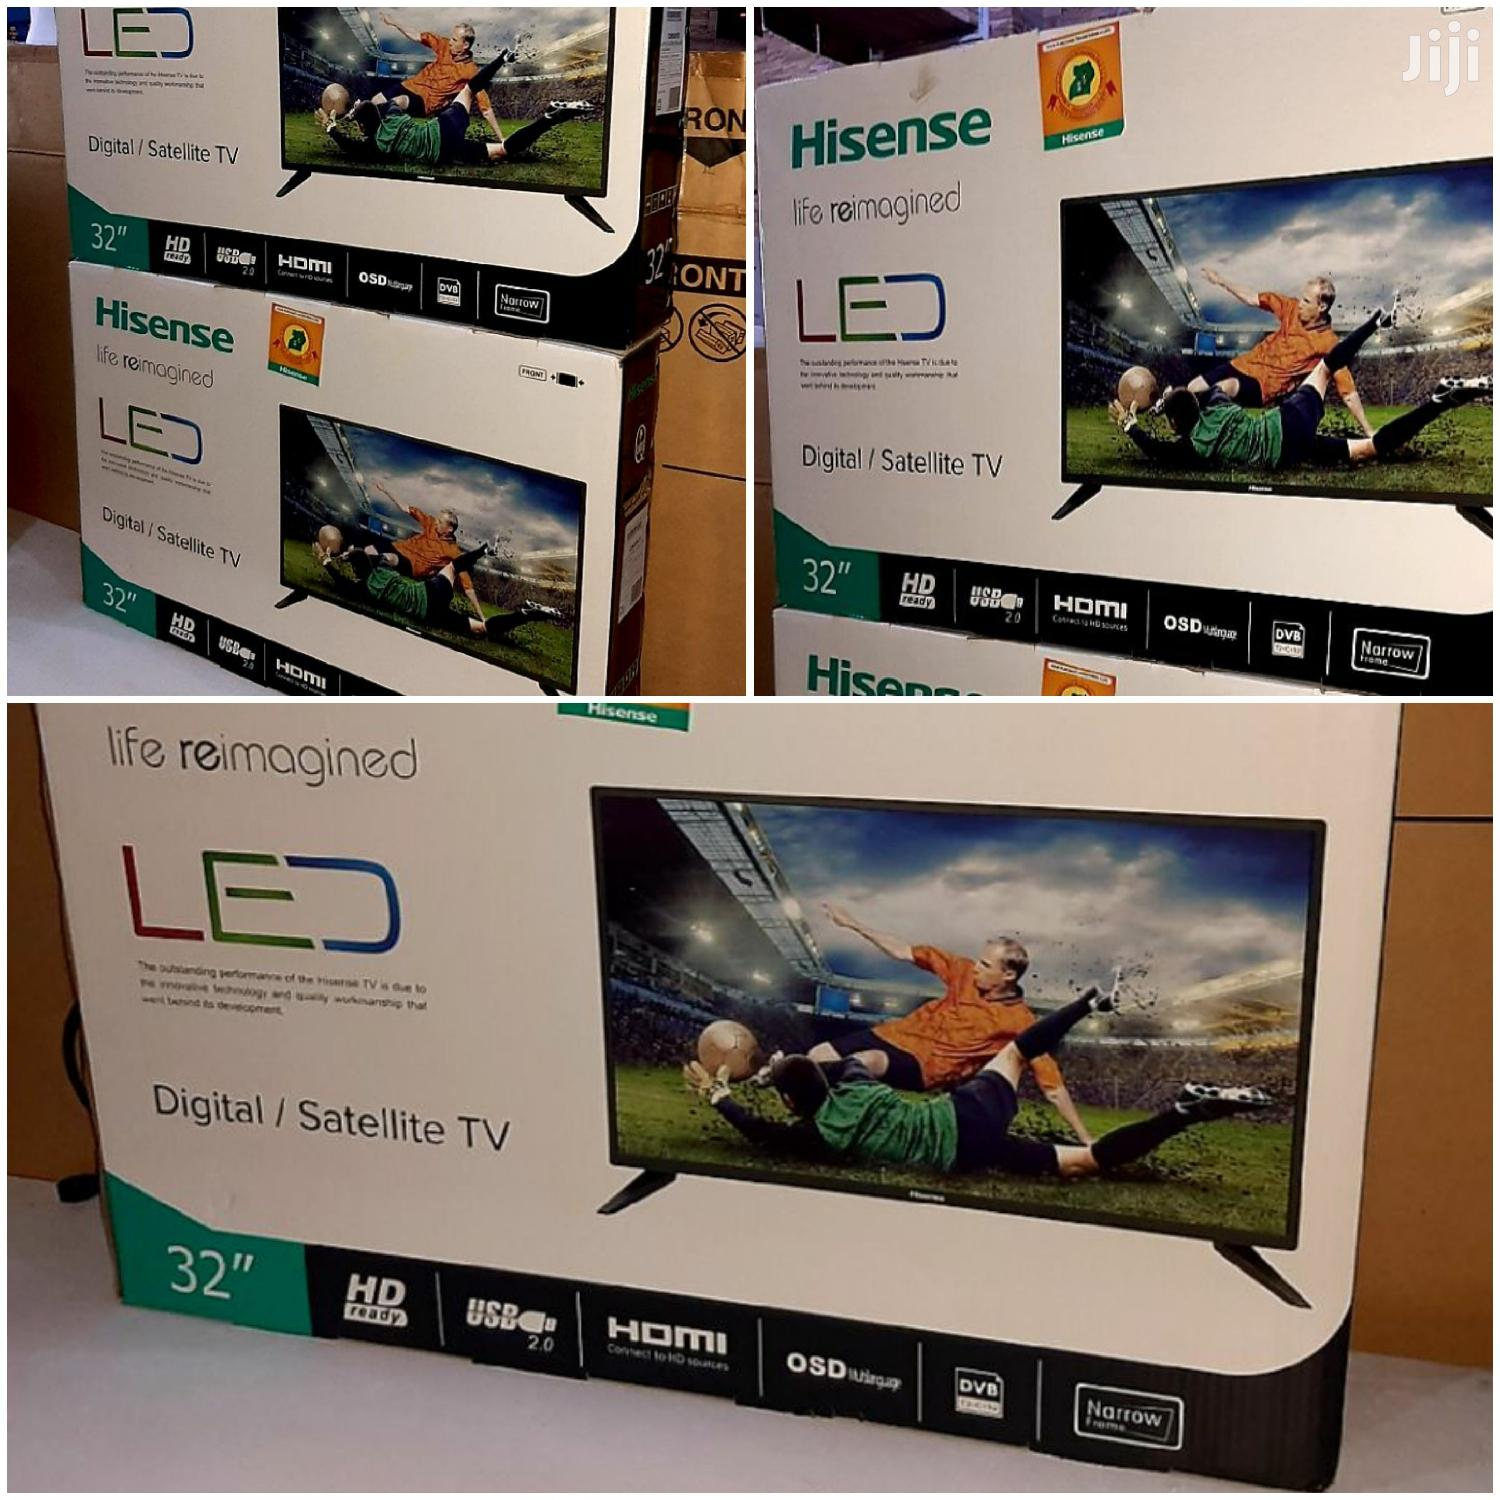 32inches Hisense Digital and Satellite TV